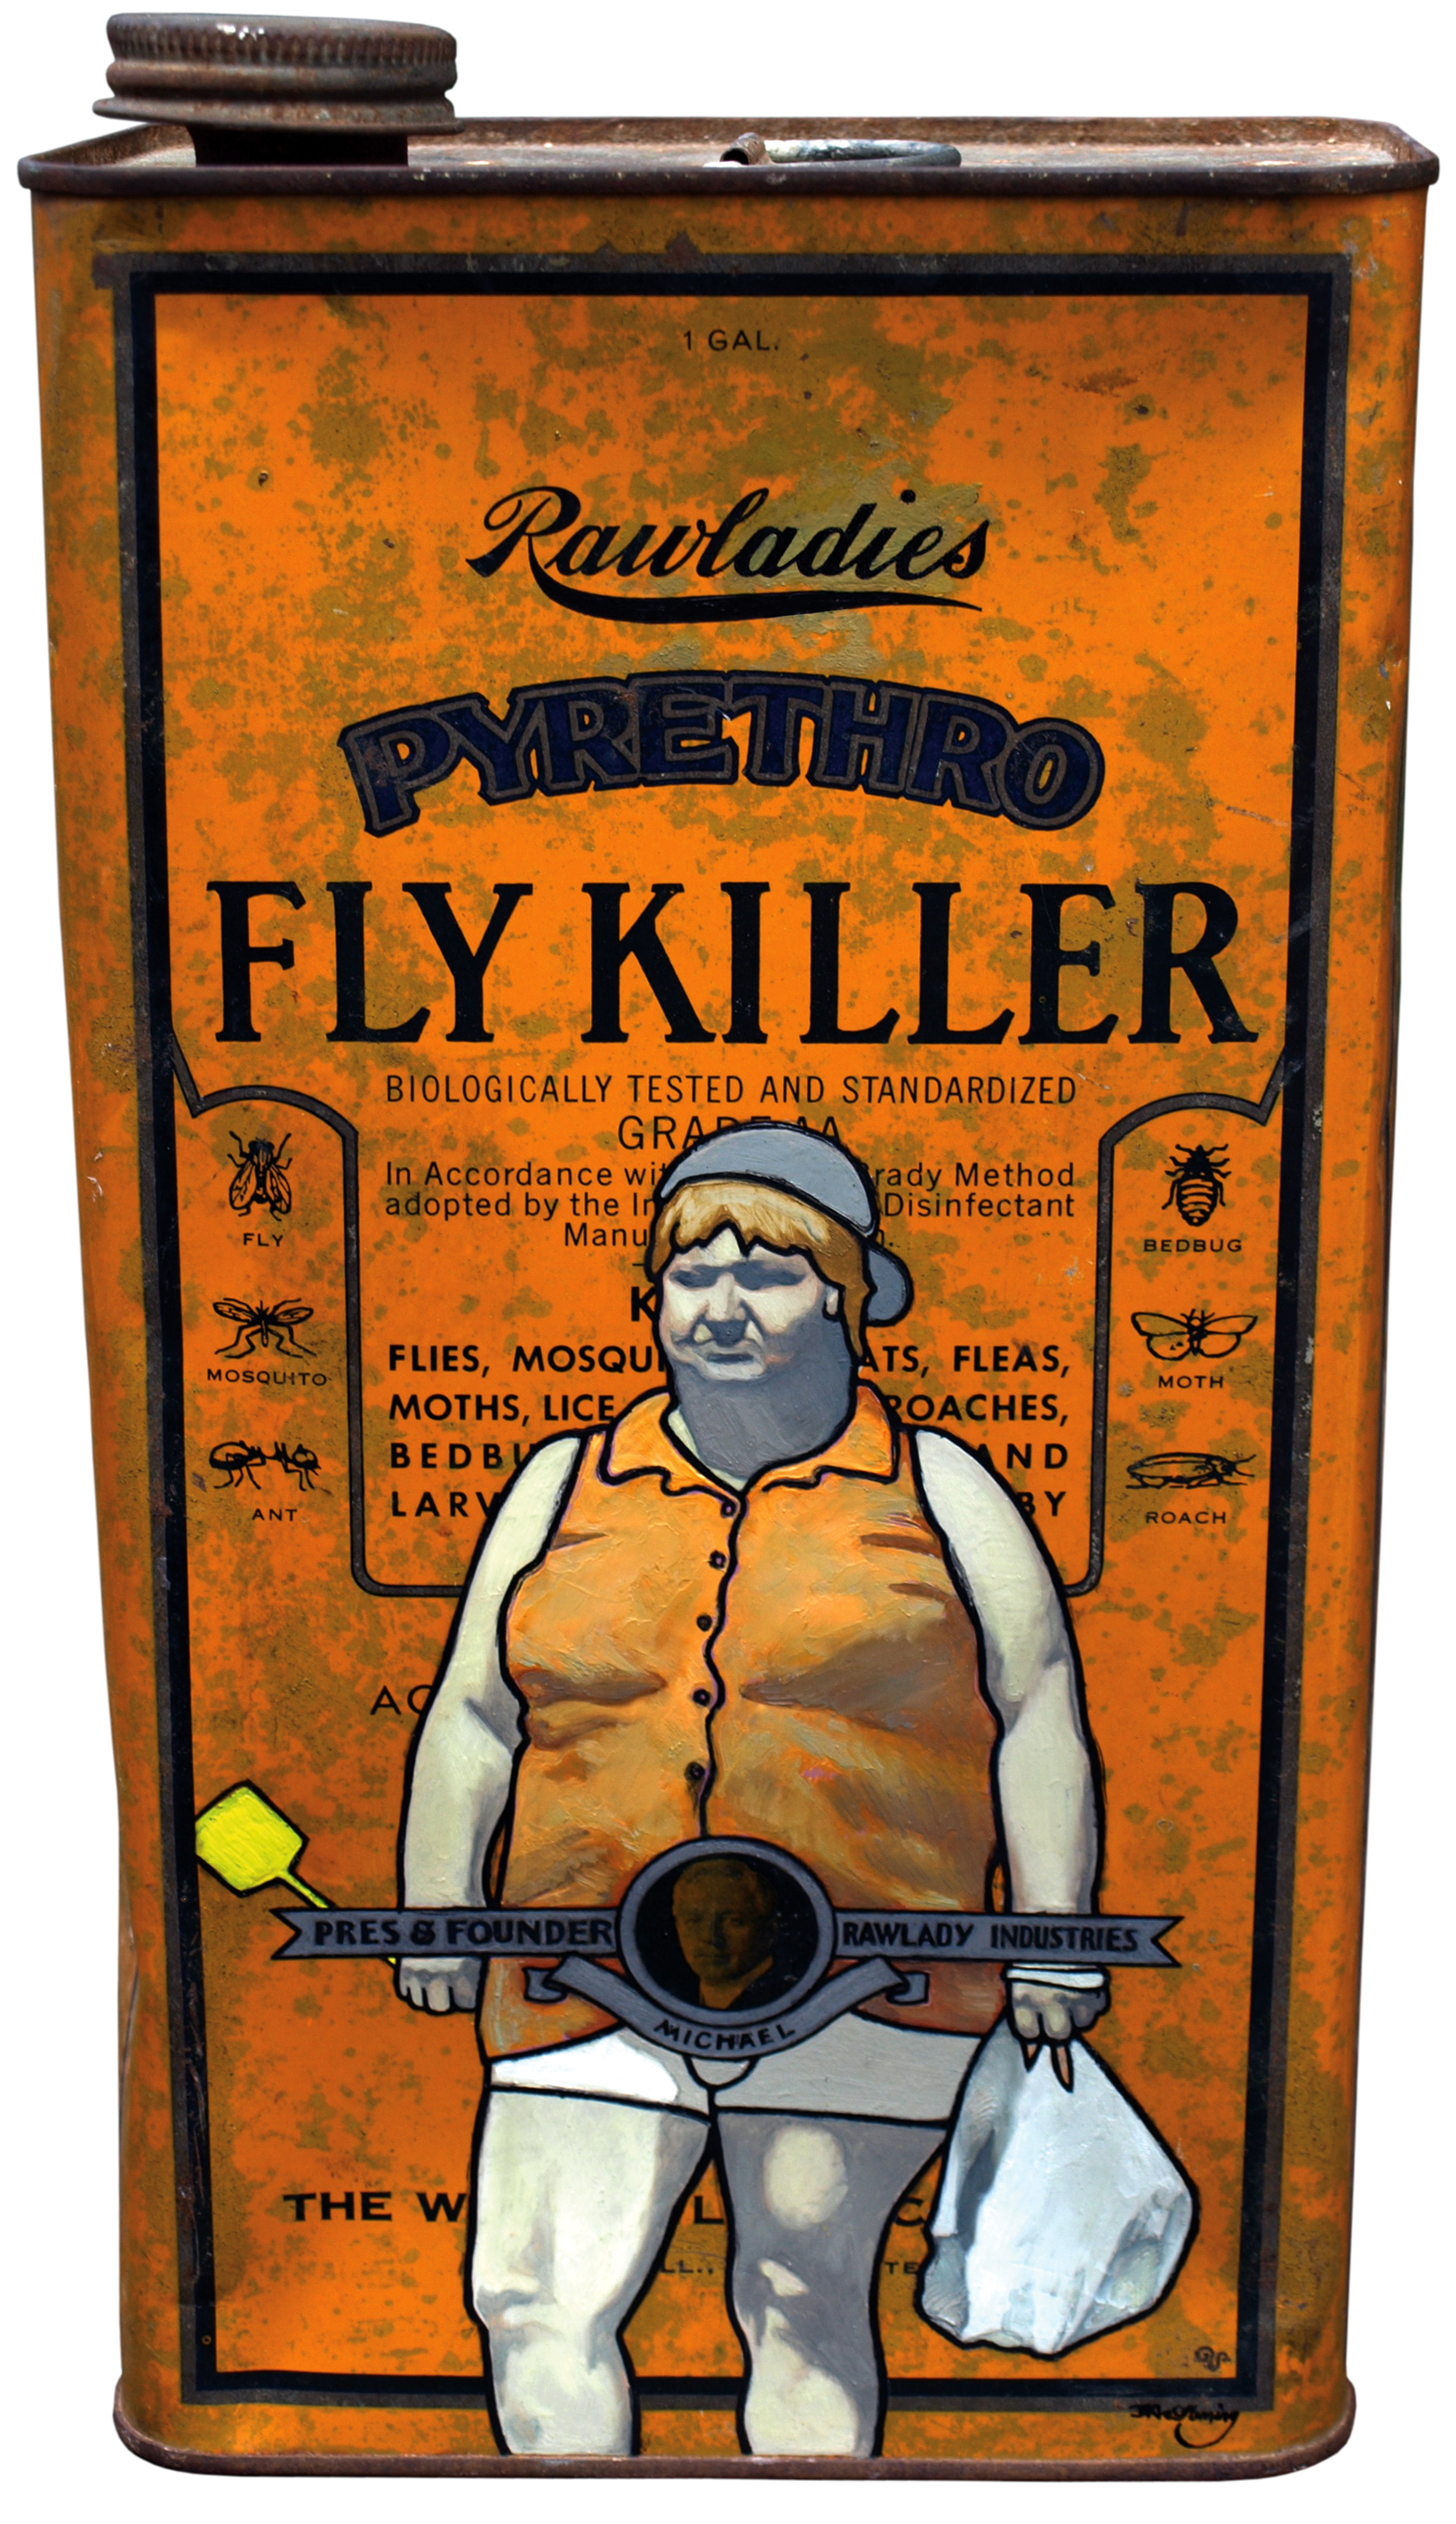 Fly Killer (2008) oil and eggshell on tin can by New Zealand artist David Le Fleming